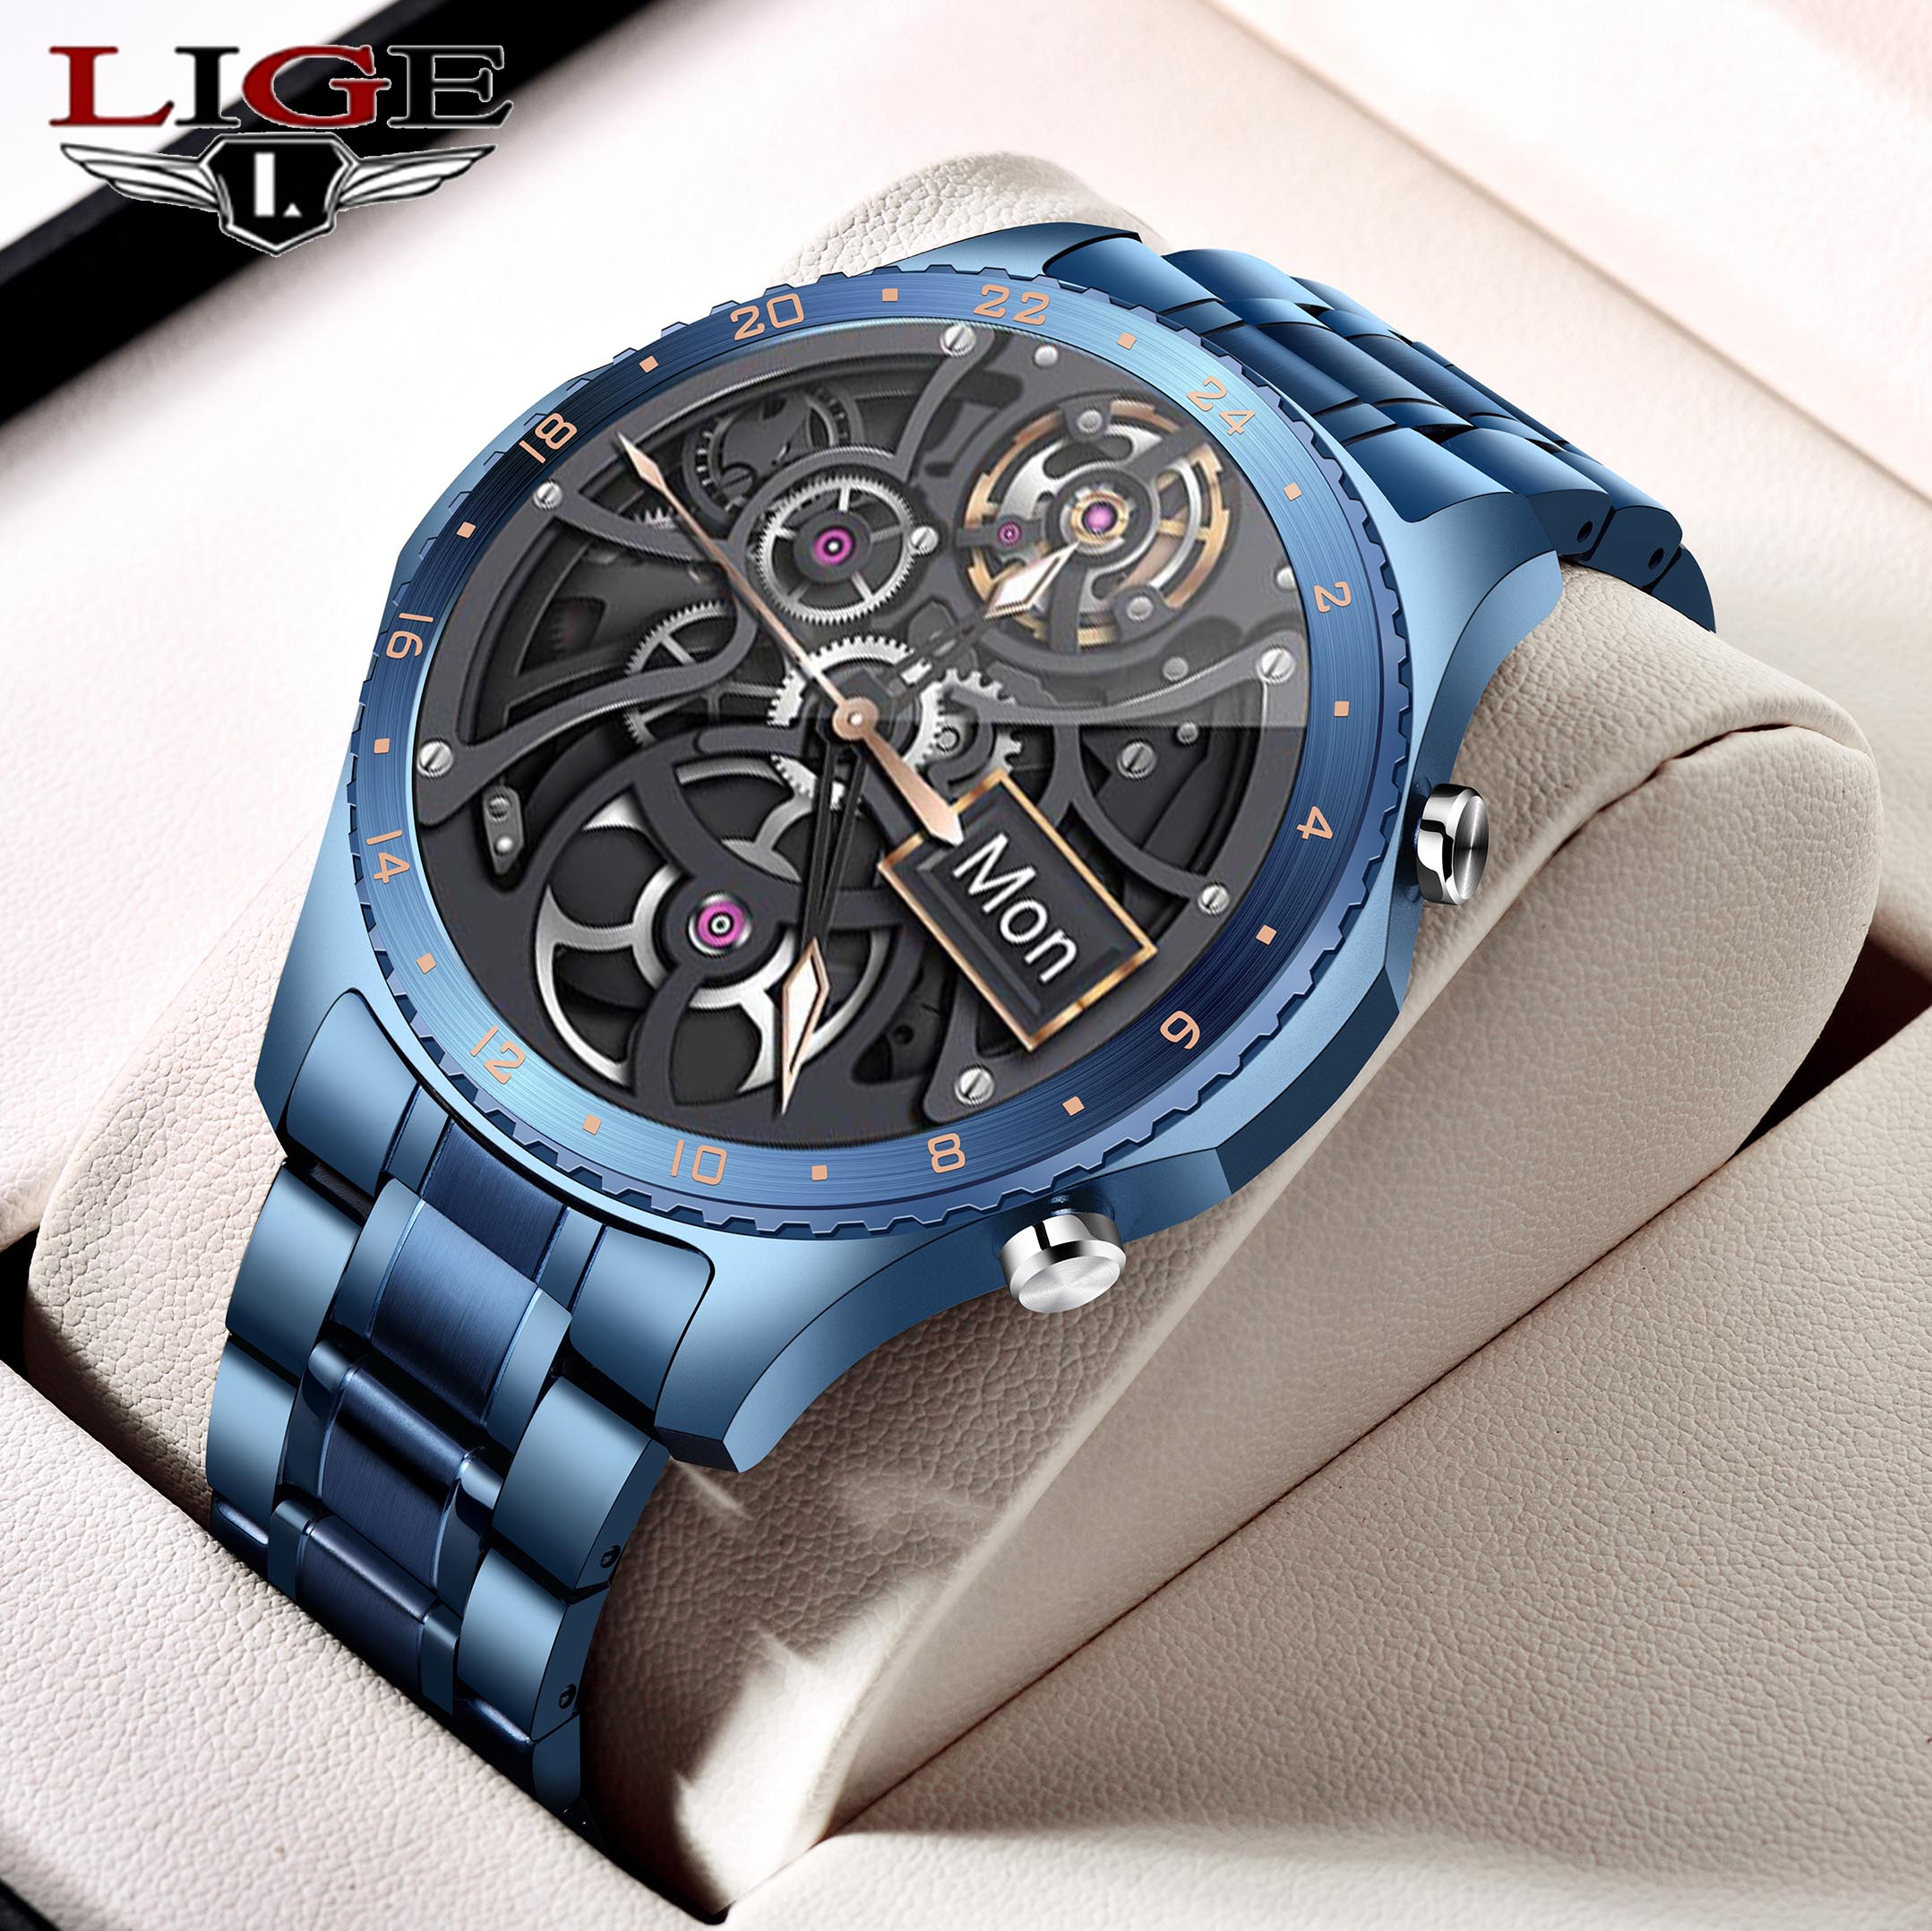 LIGE 2021 New Smart Watch Men Full Touch Screen Sports Fitness Watch Waterproof Bluetooth Call For Android IOS smartwatch Mens